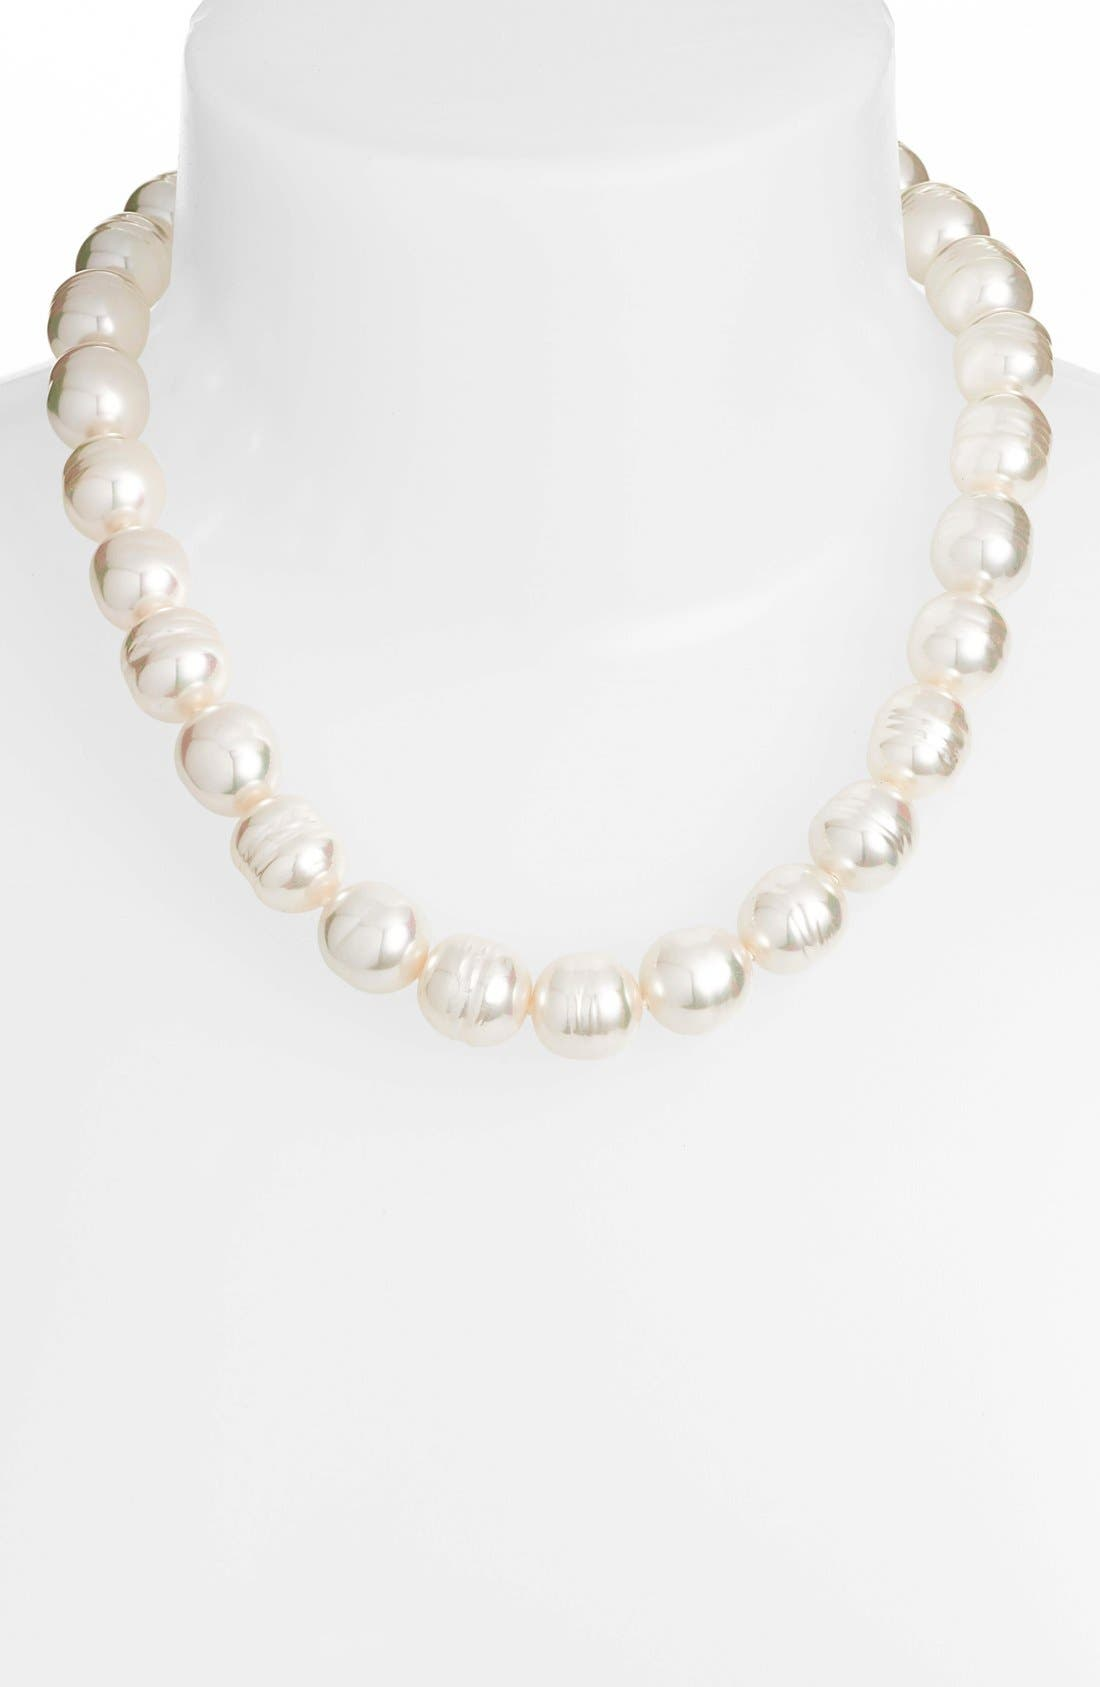 14mm Baroque Simulated Pearl Strand Necklace,                         Main,                         color, 100